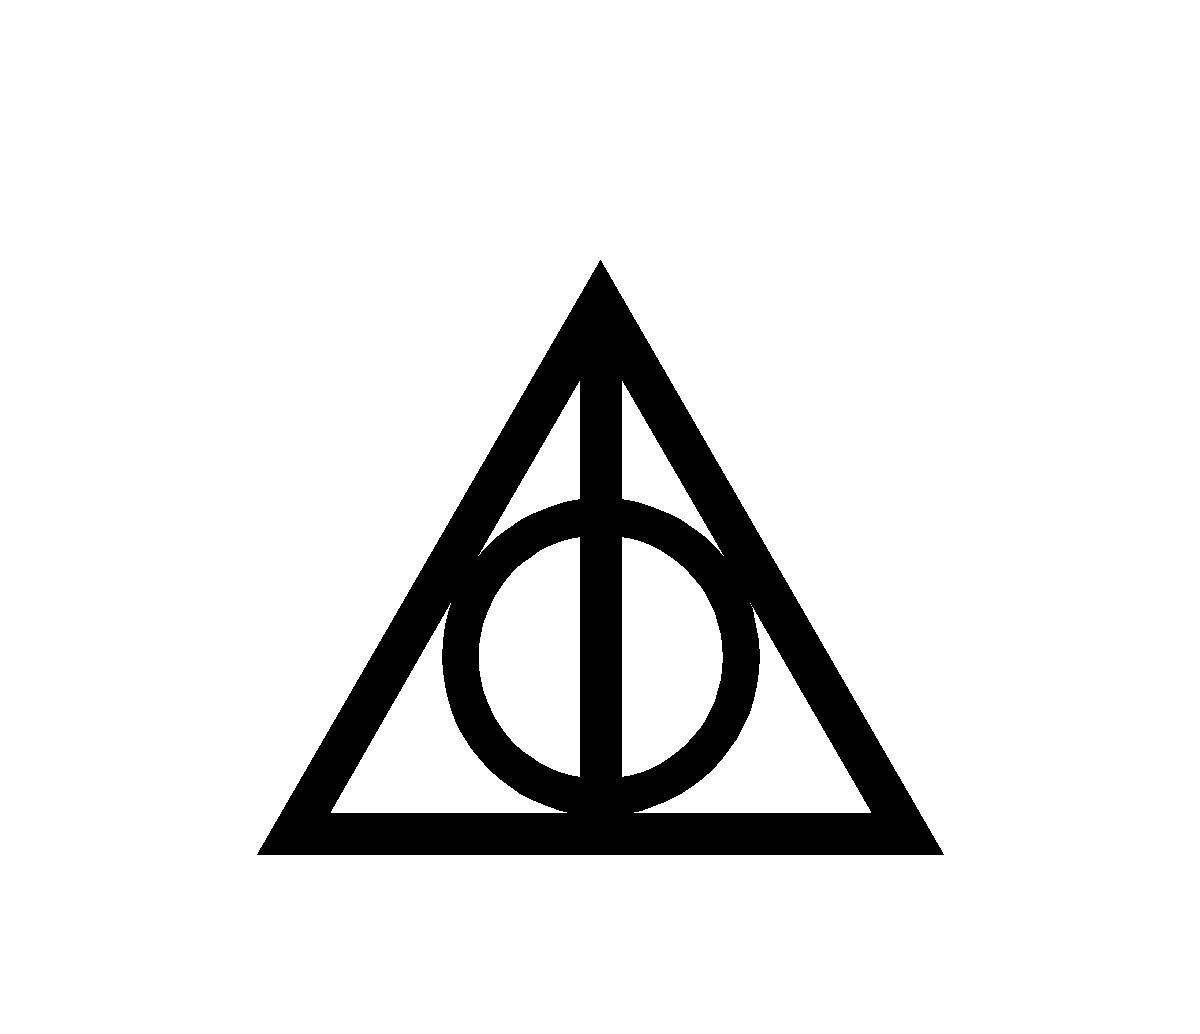 Harry Potter (books) quizzes for the real fan